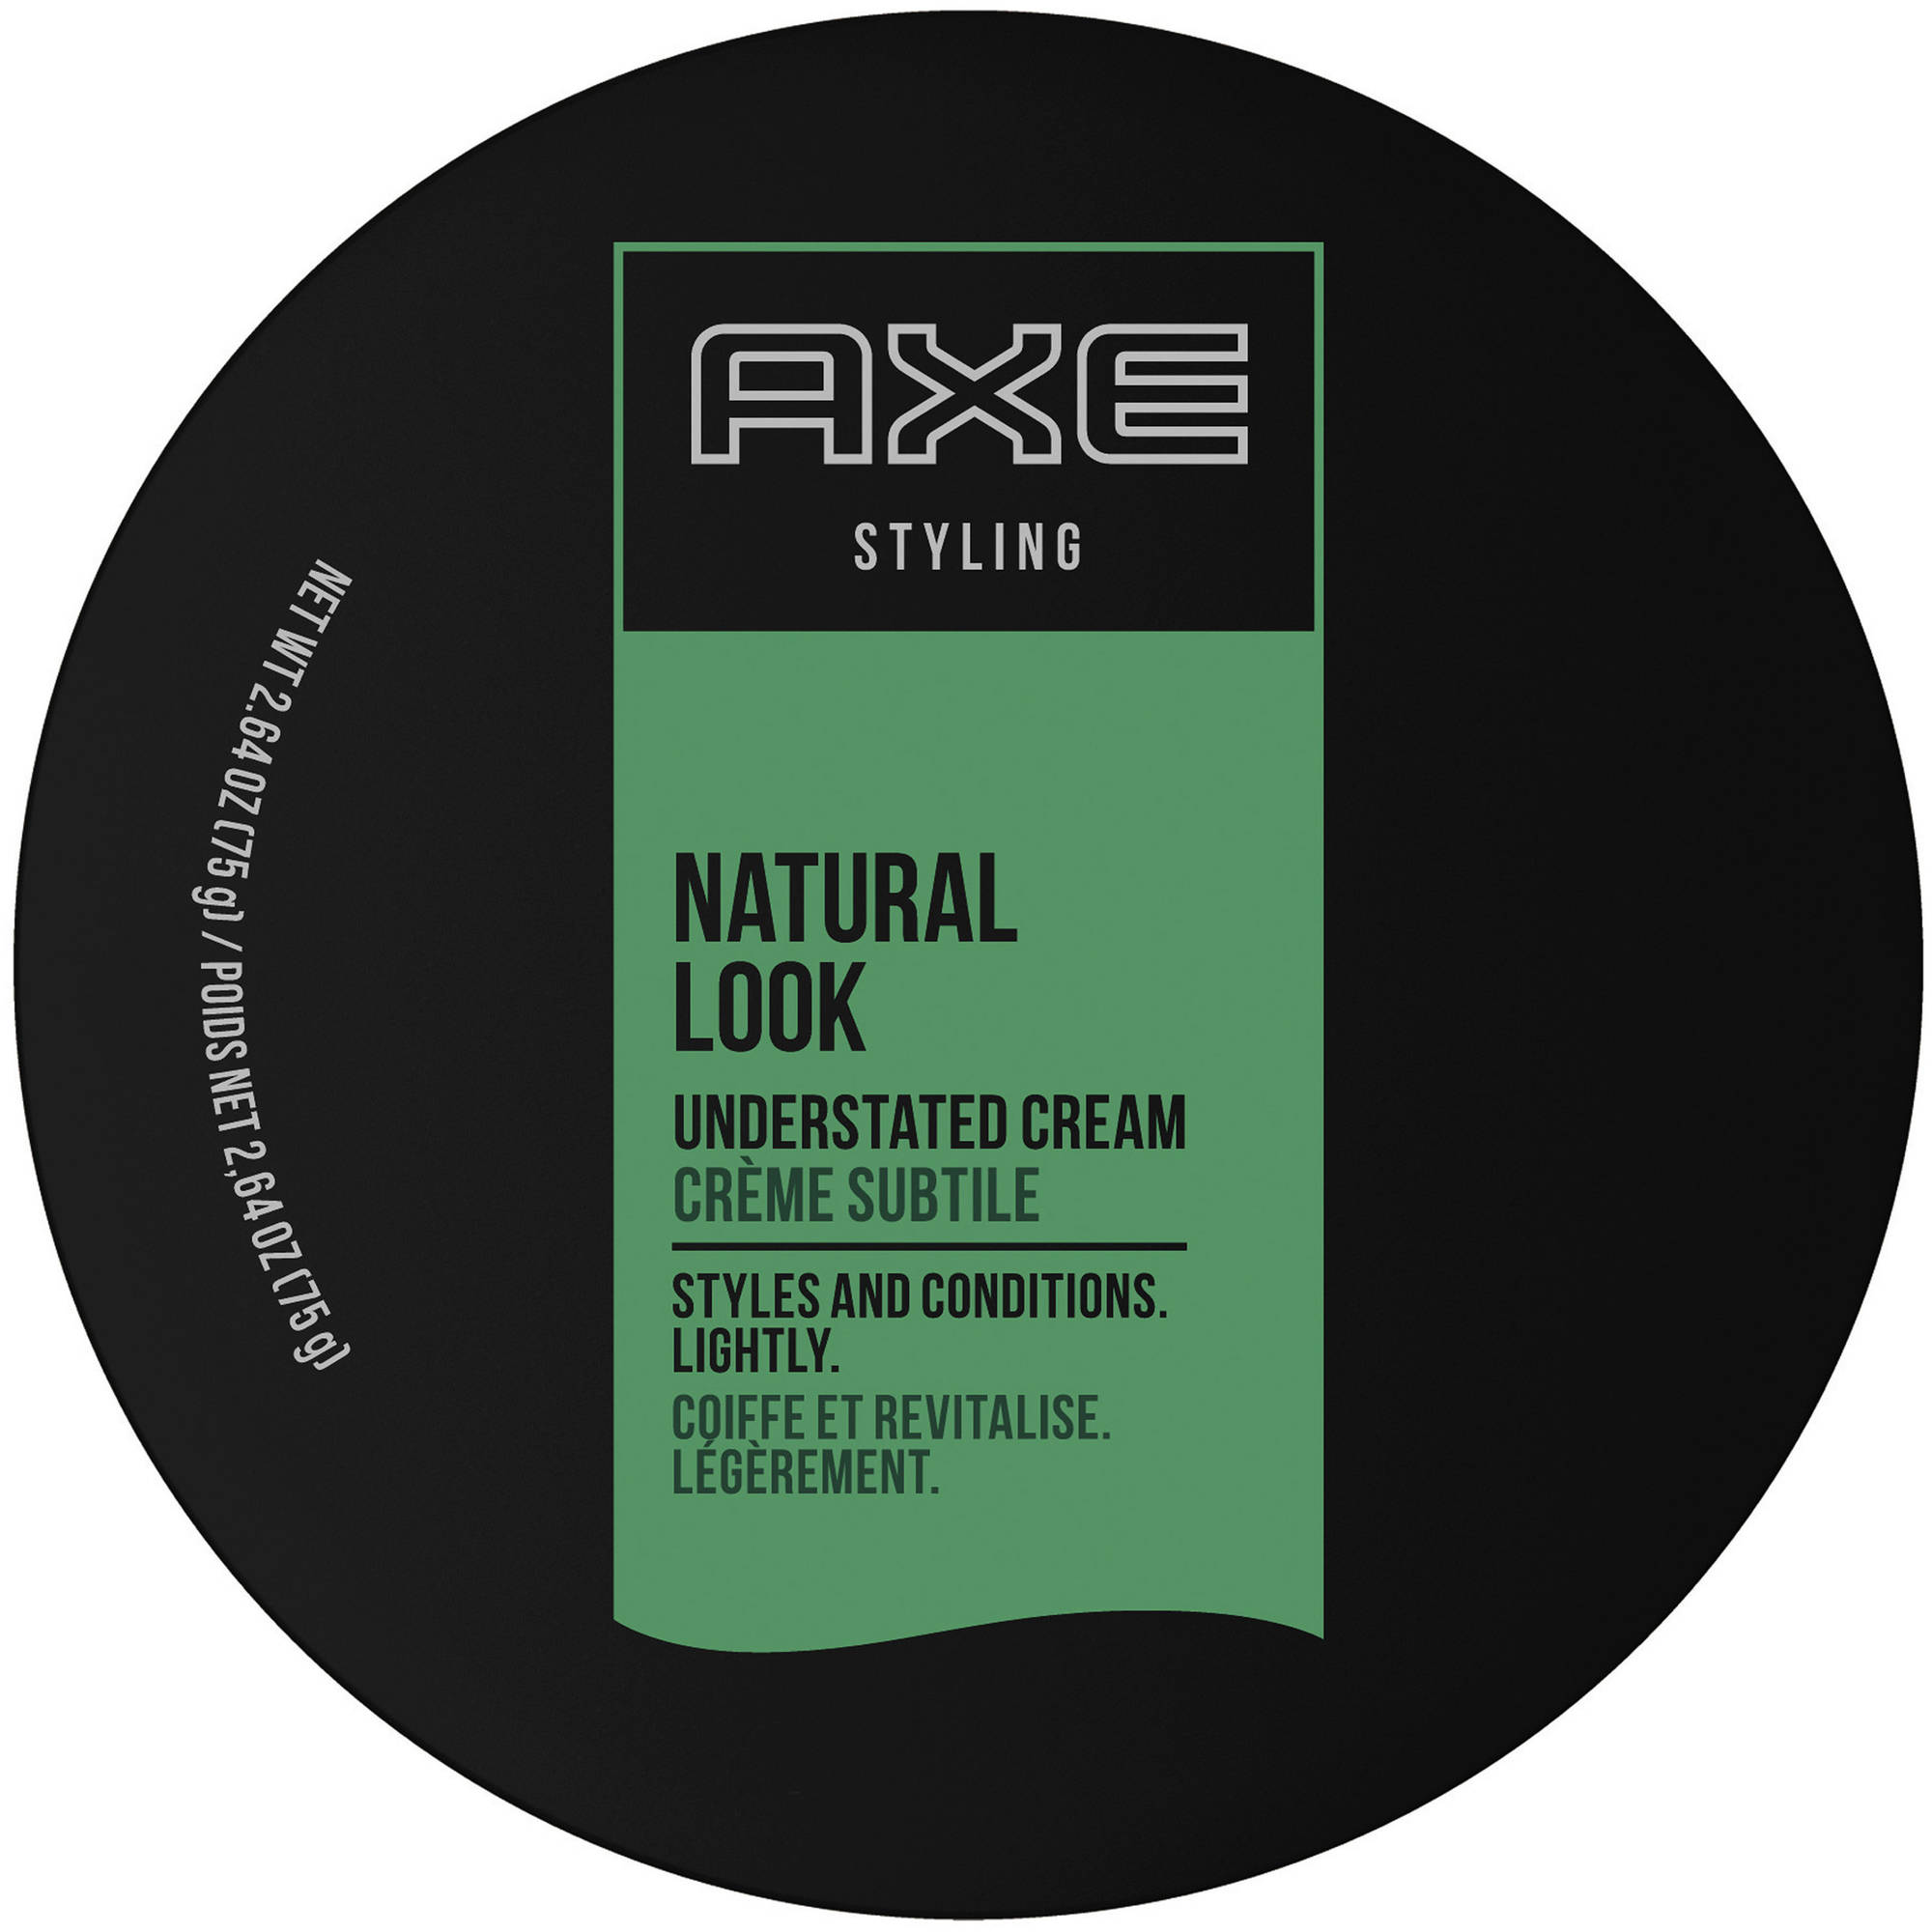 AXE Natural Look Understated Cream, 2.64 oz